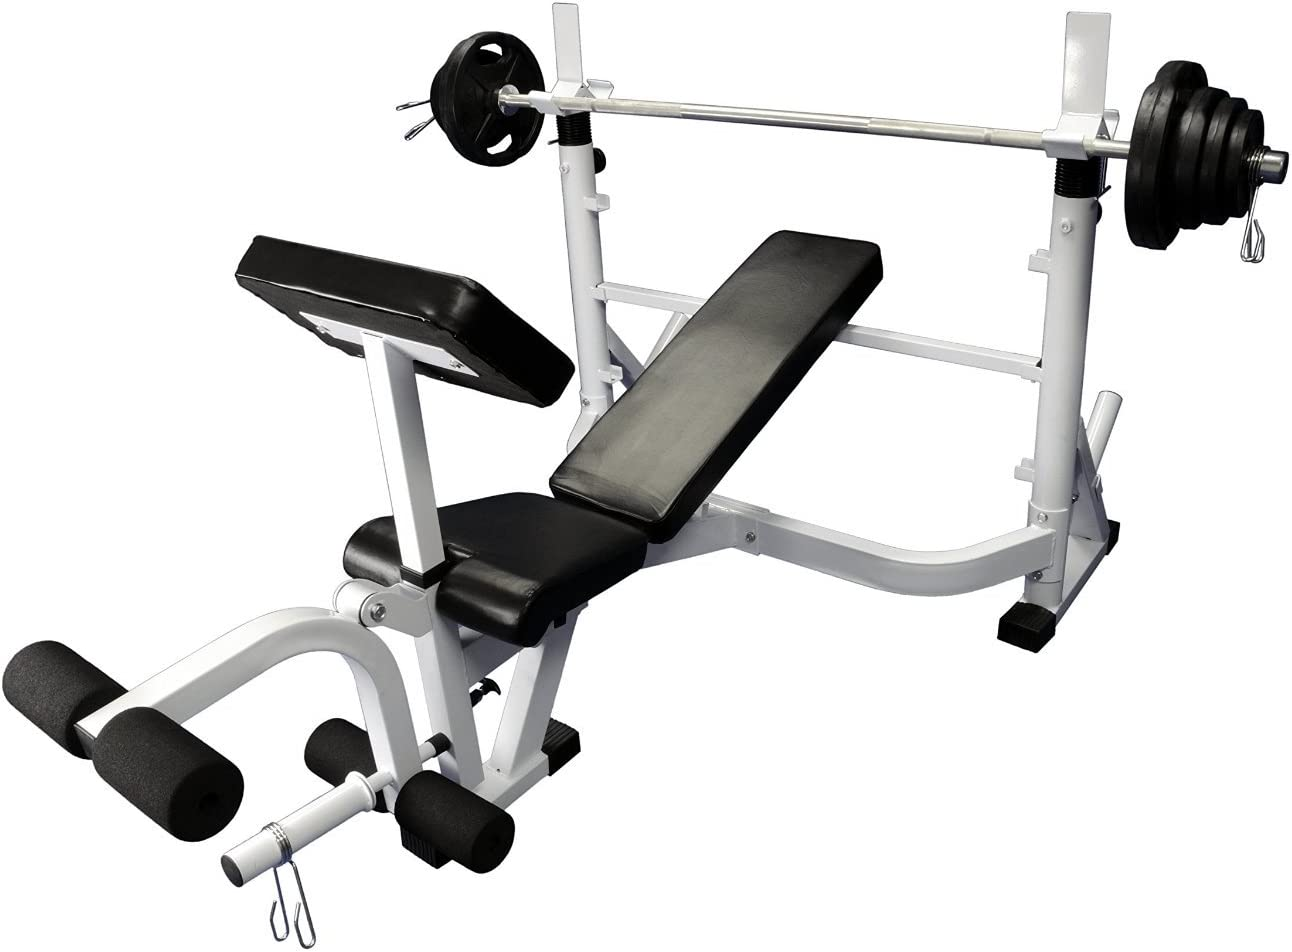 Olympic 300 lb weight set with Power Olympic Bench